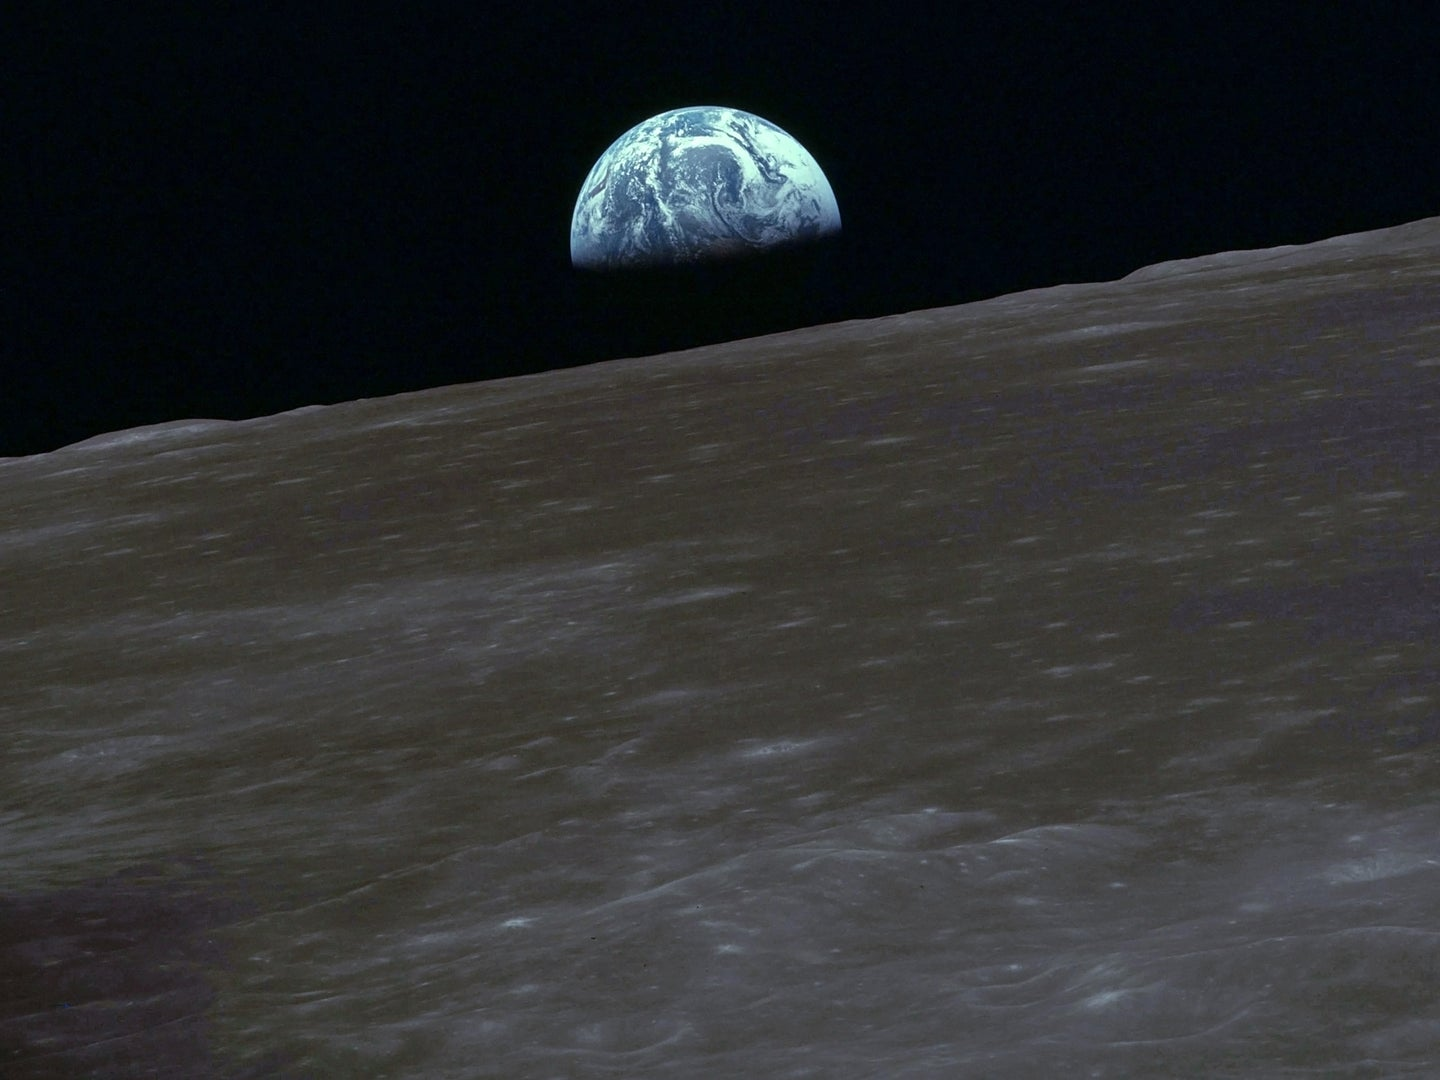 Earth rising over the moon during an Apollo mission